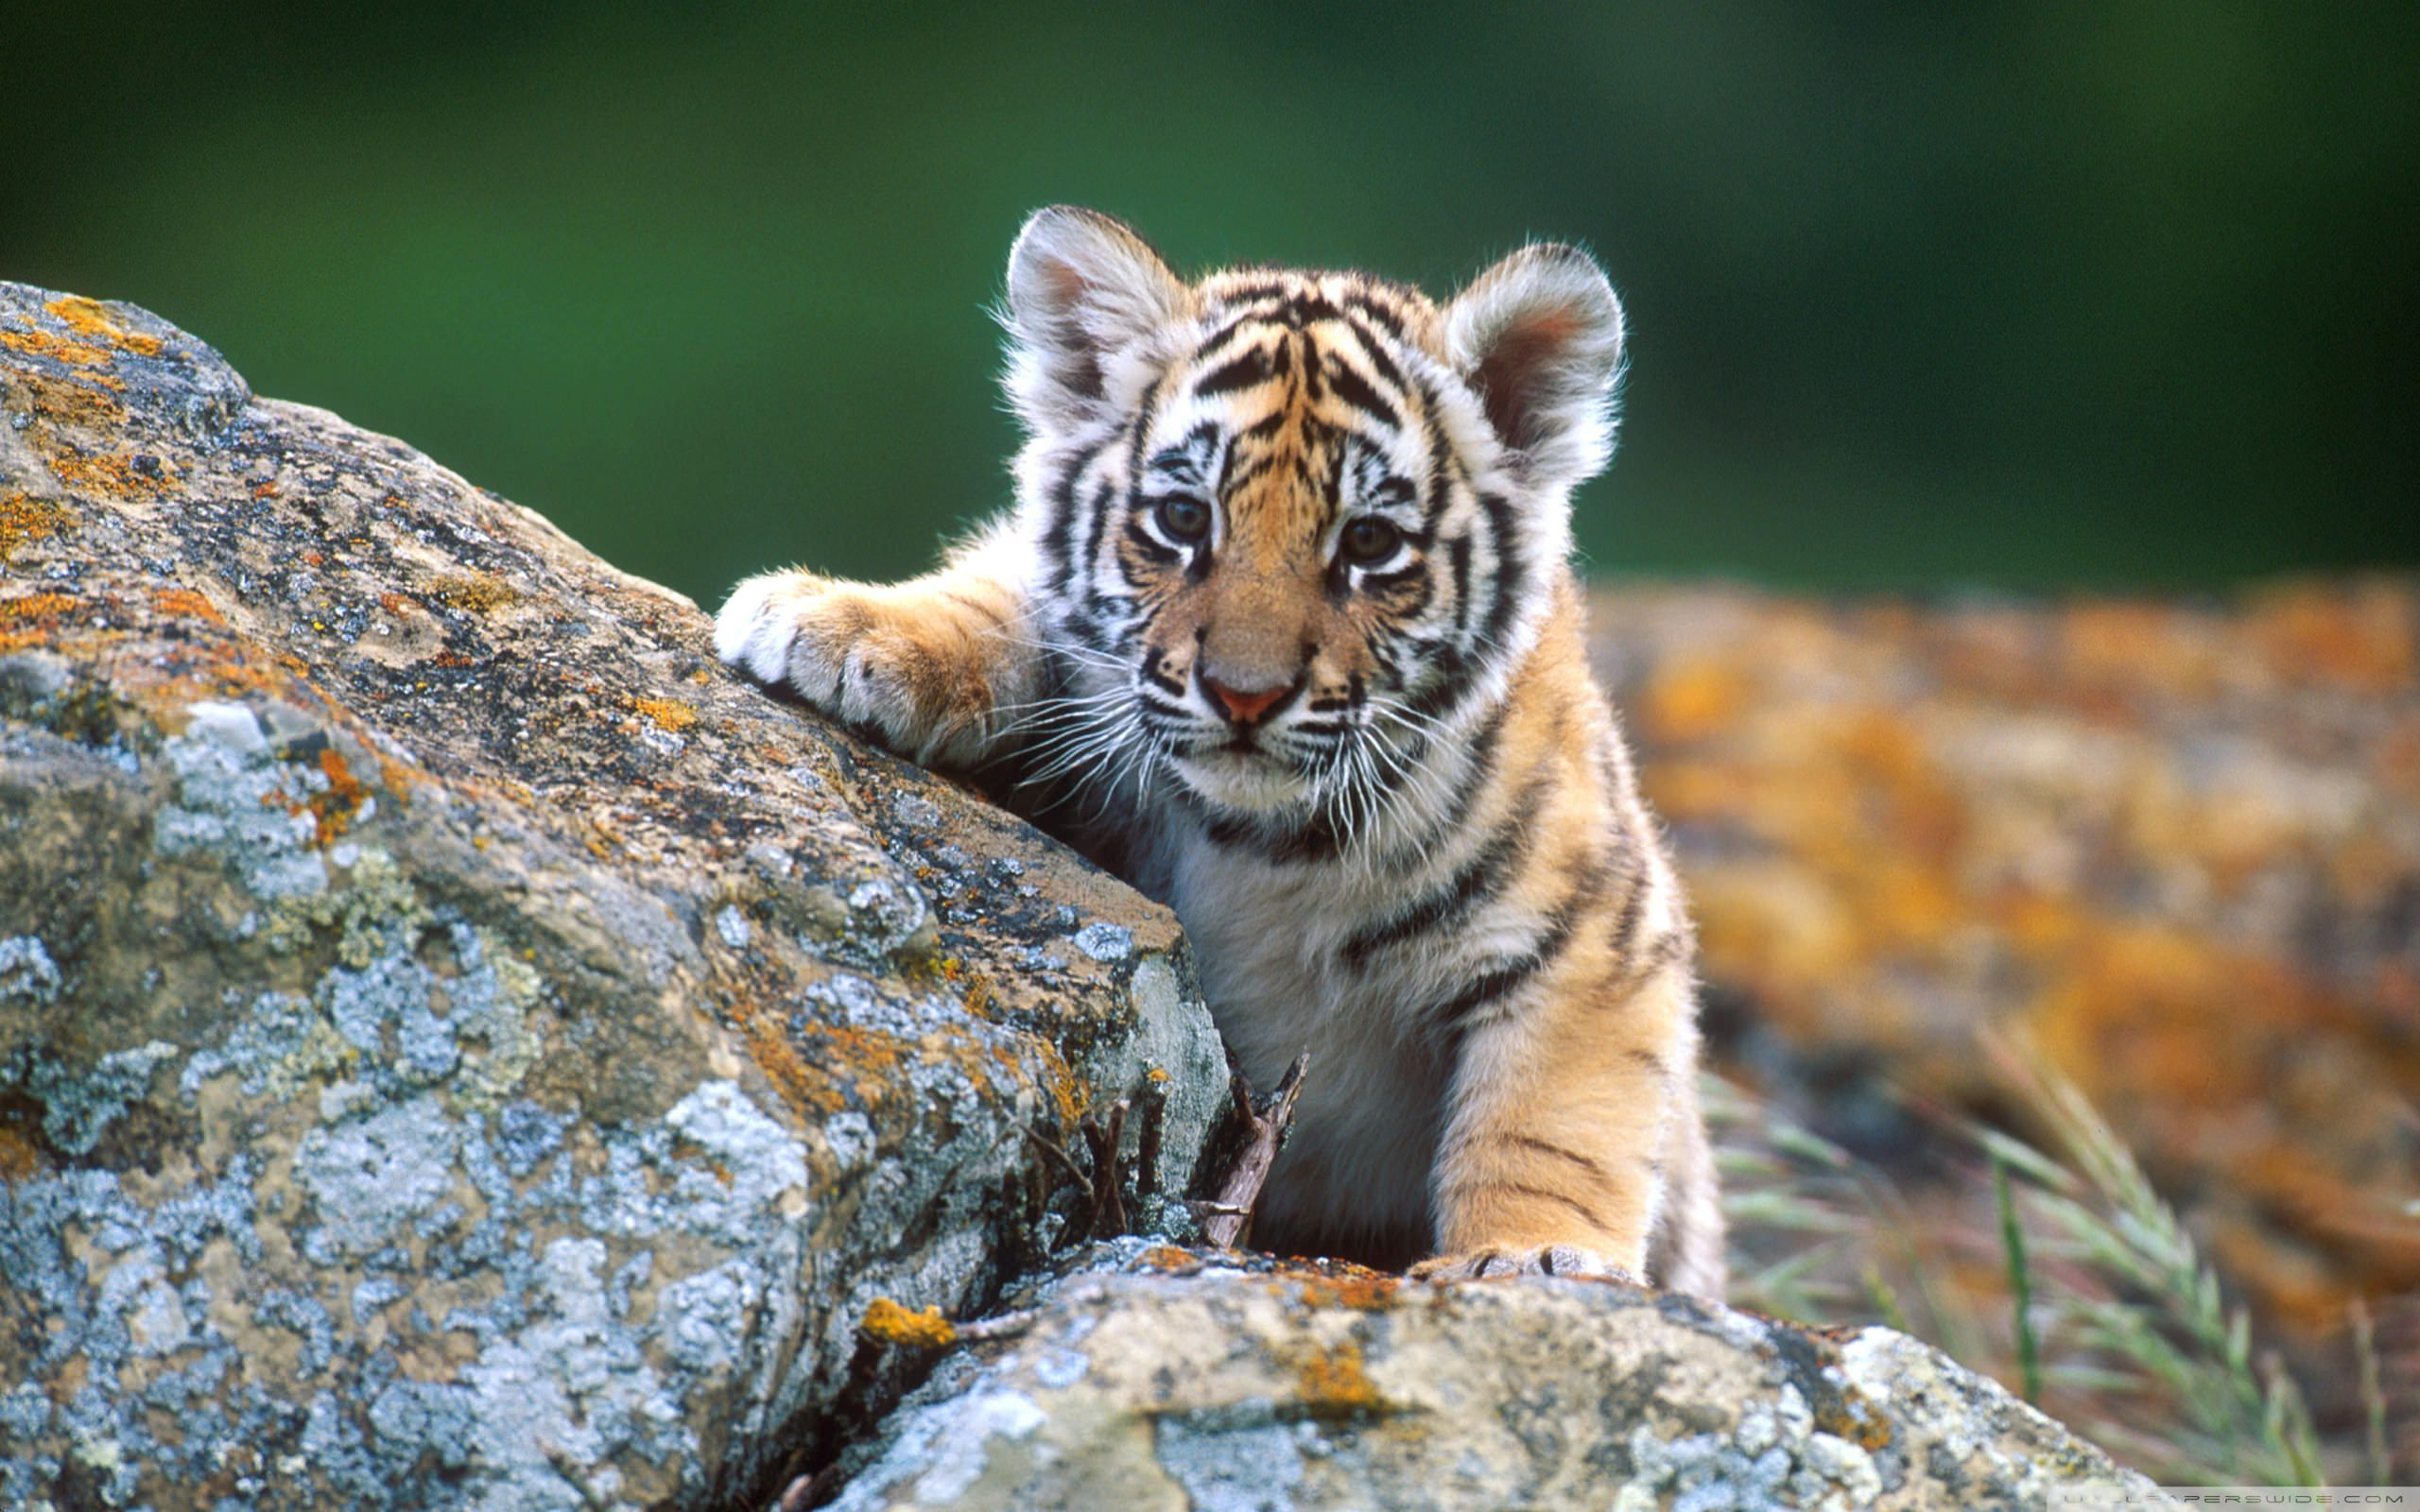 Tiger Cub Wallpaper 2560x1600